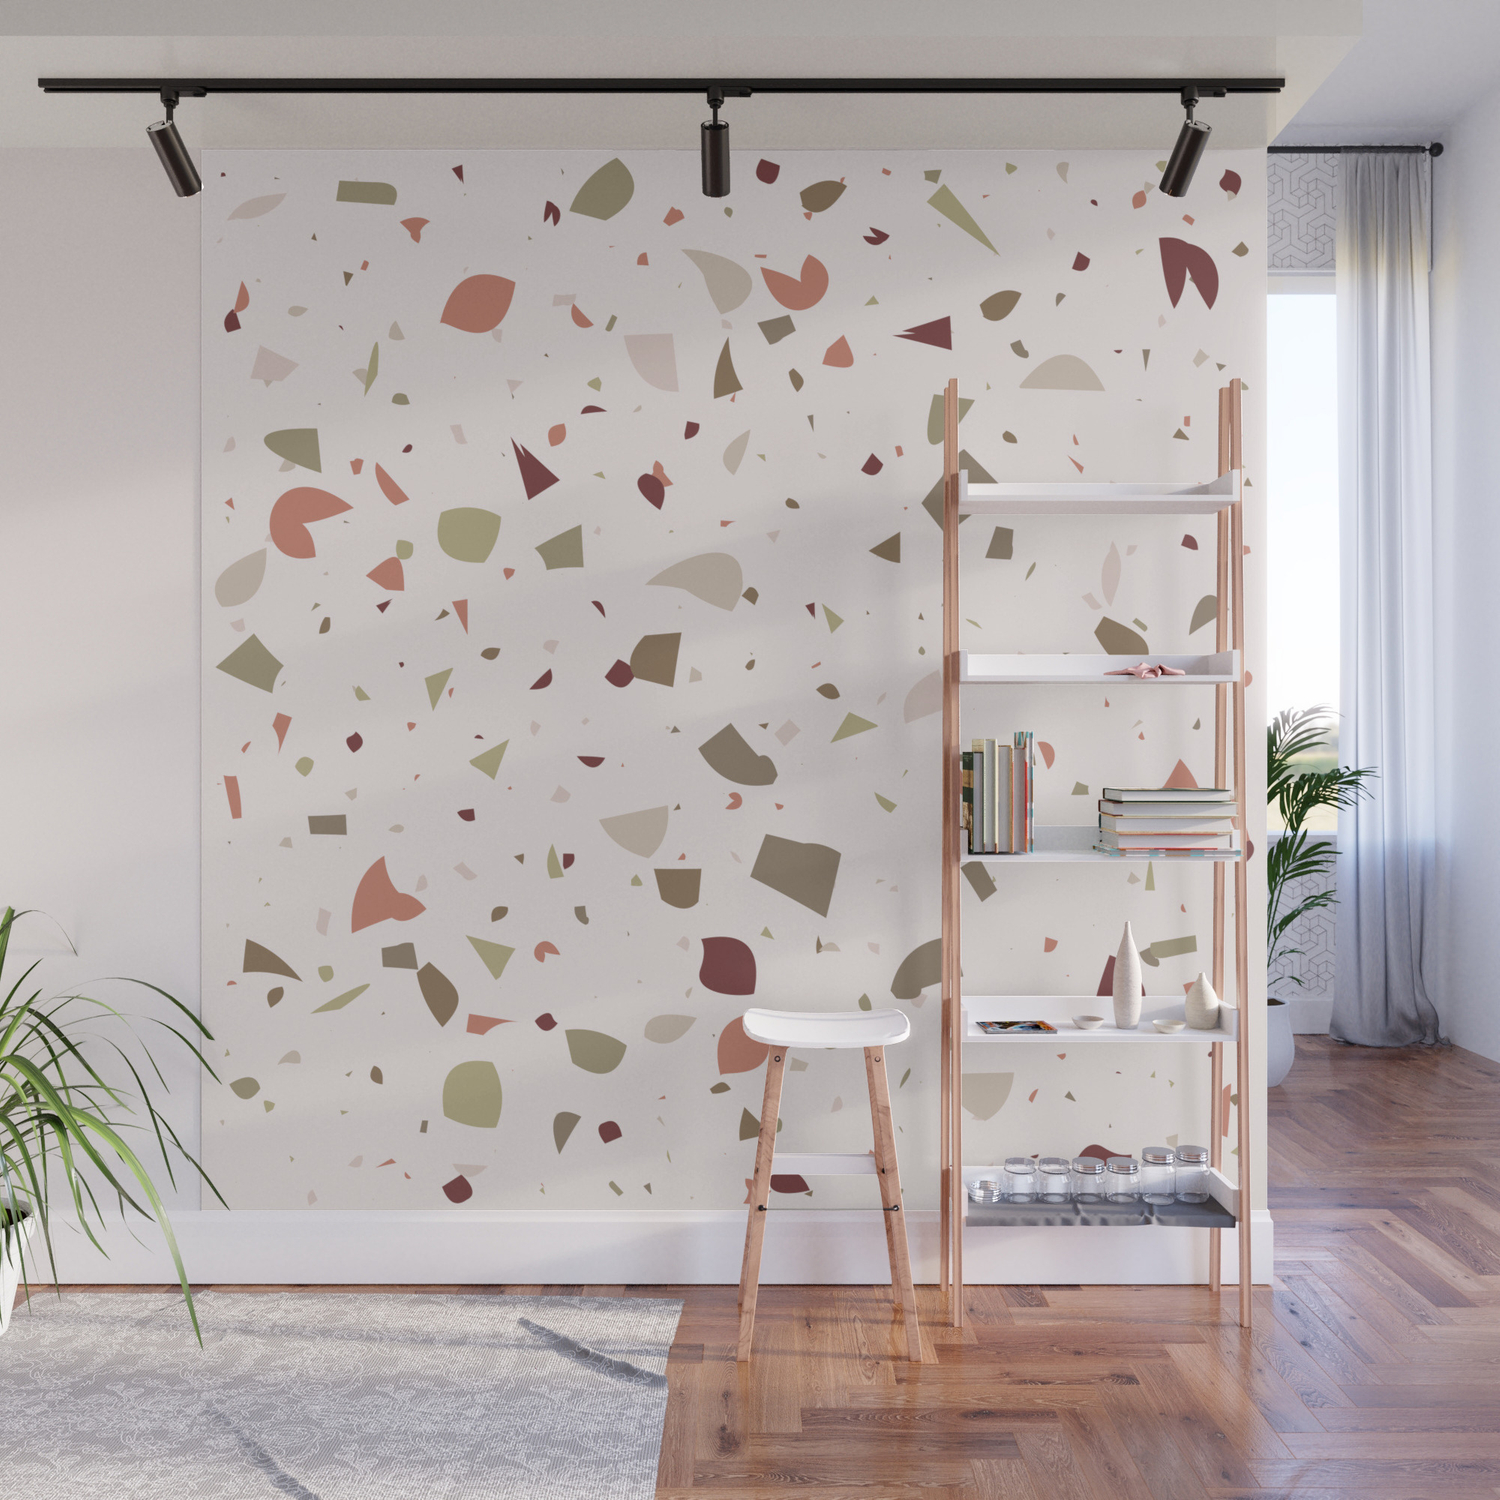 Classic Terrazzo Marble Floor Pattern Background Wall Mural By Drawfine Society6